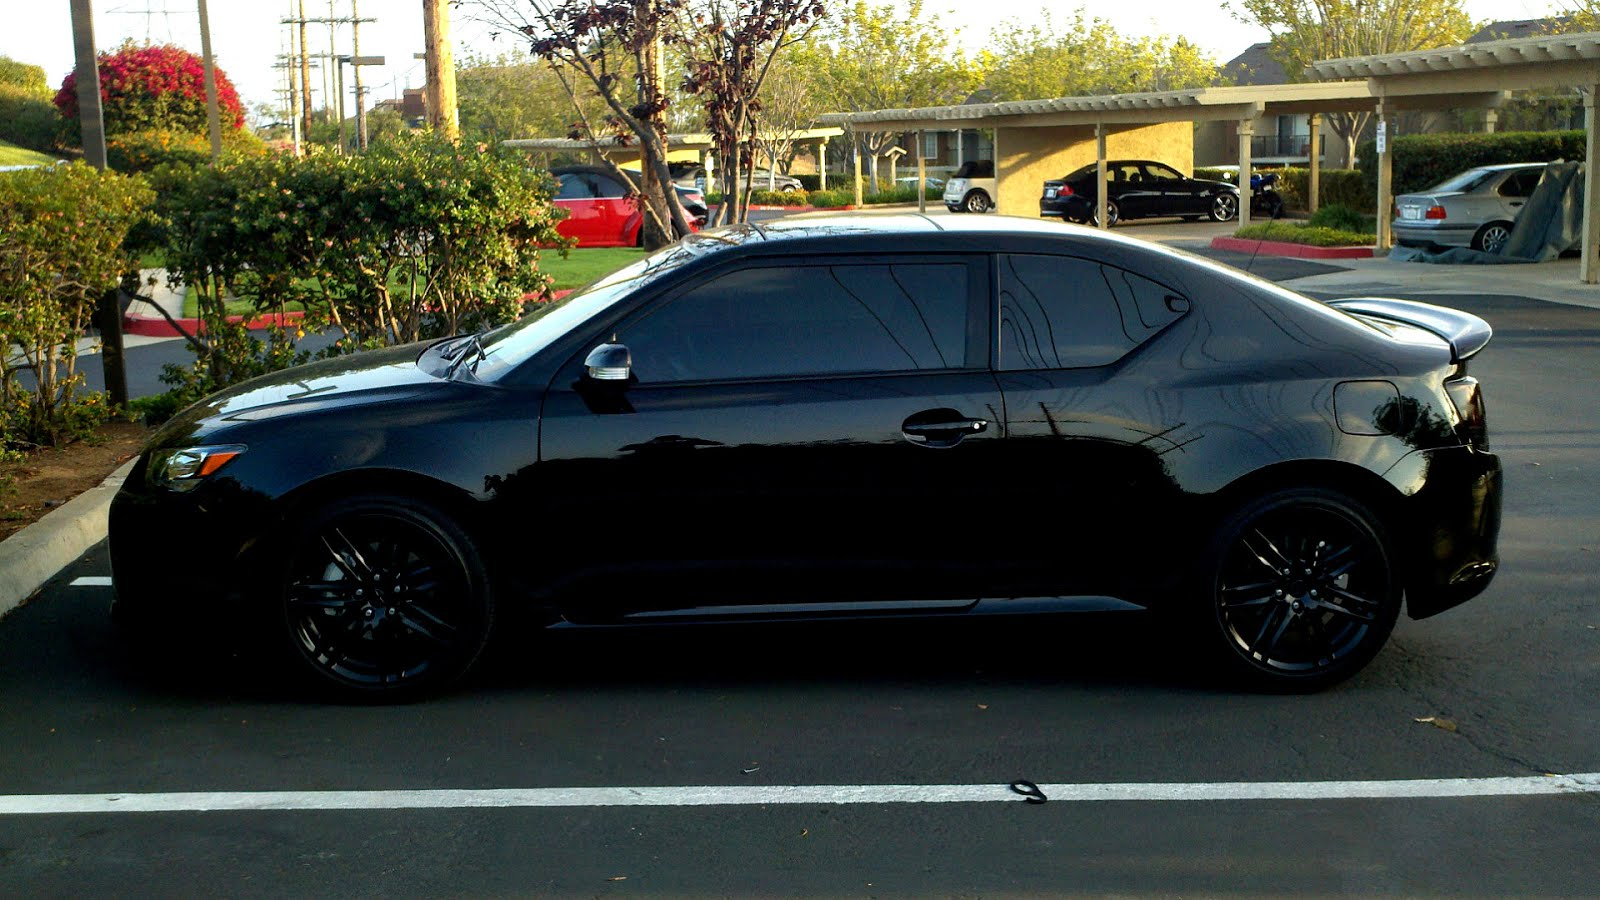 Scion scion tc horsepower : All Black Scion Tc